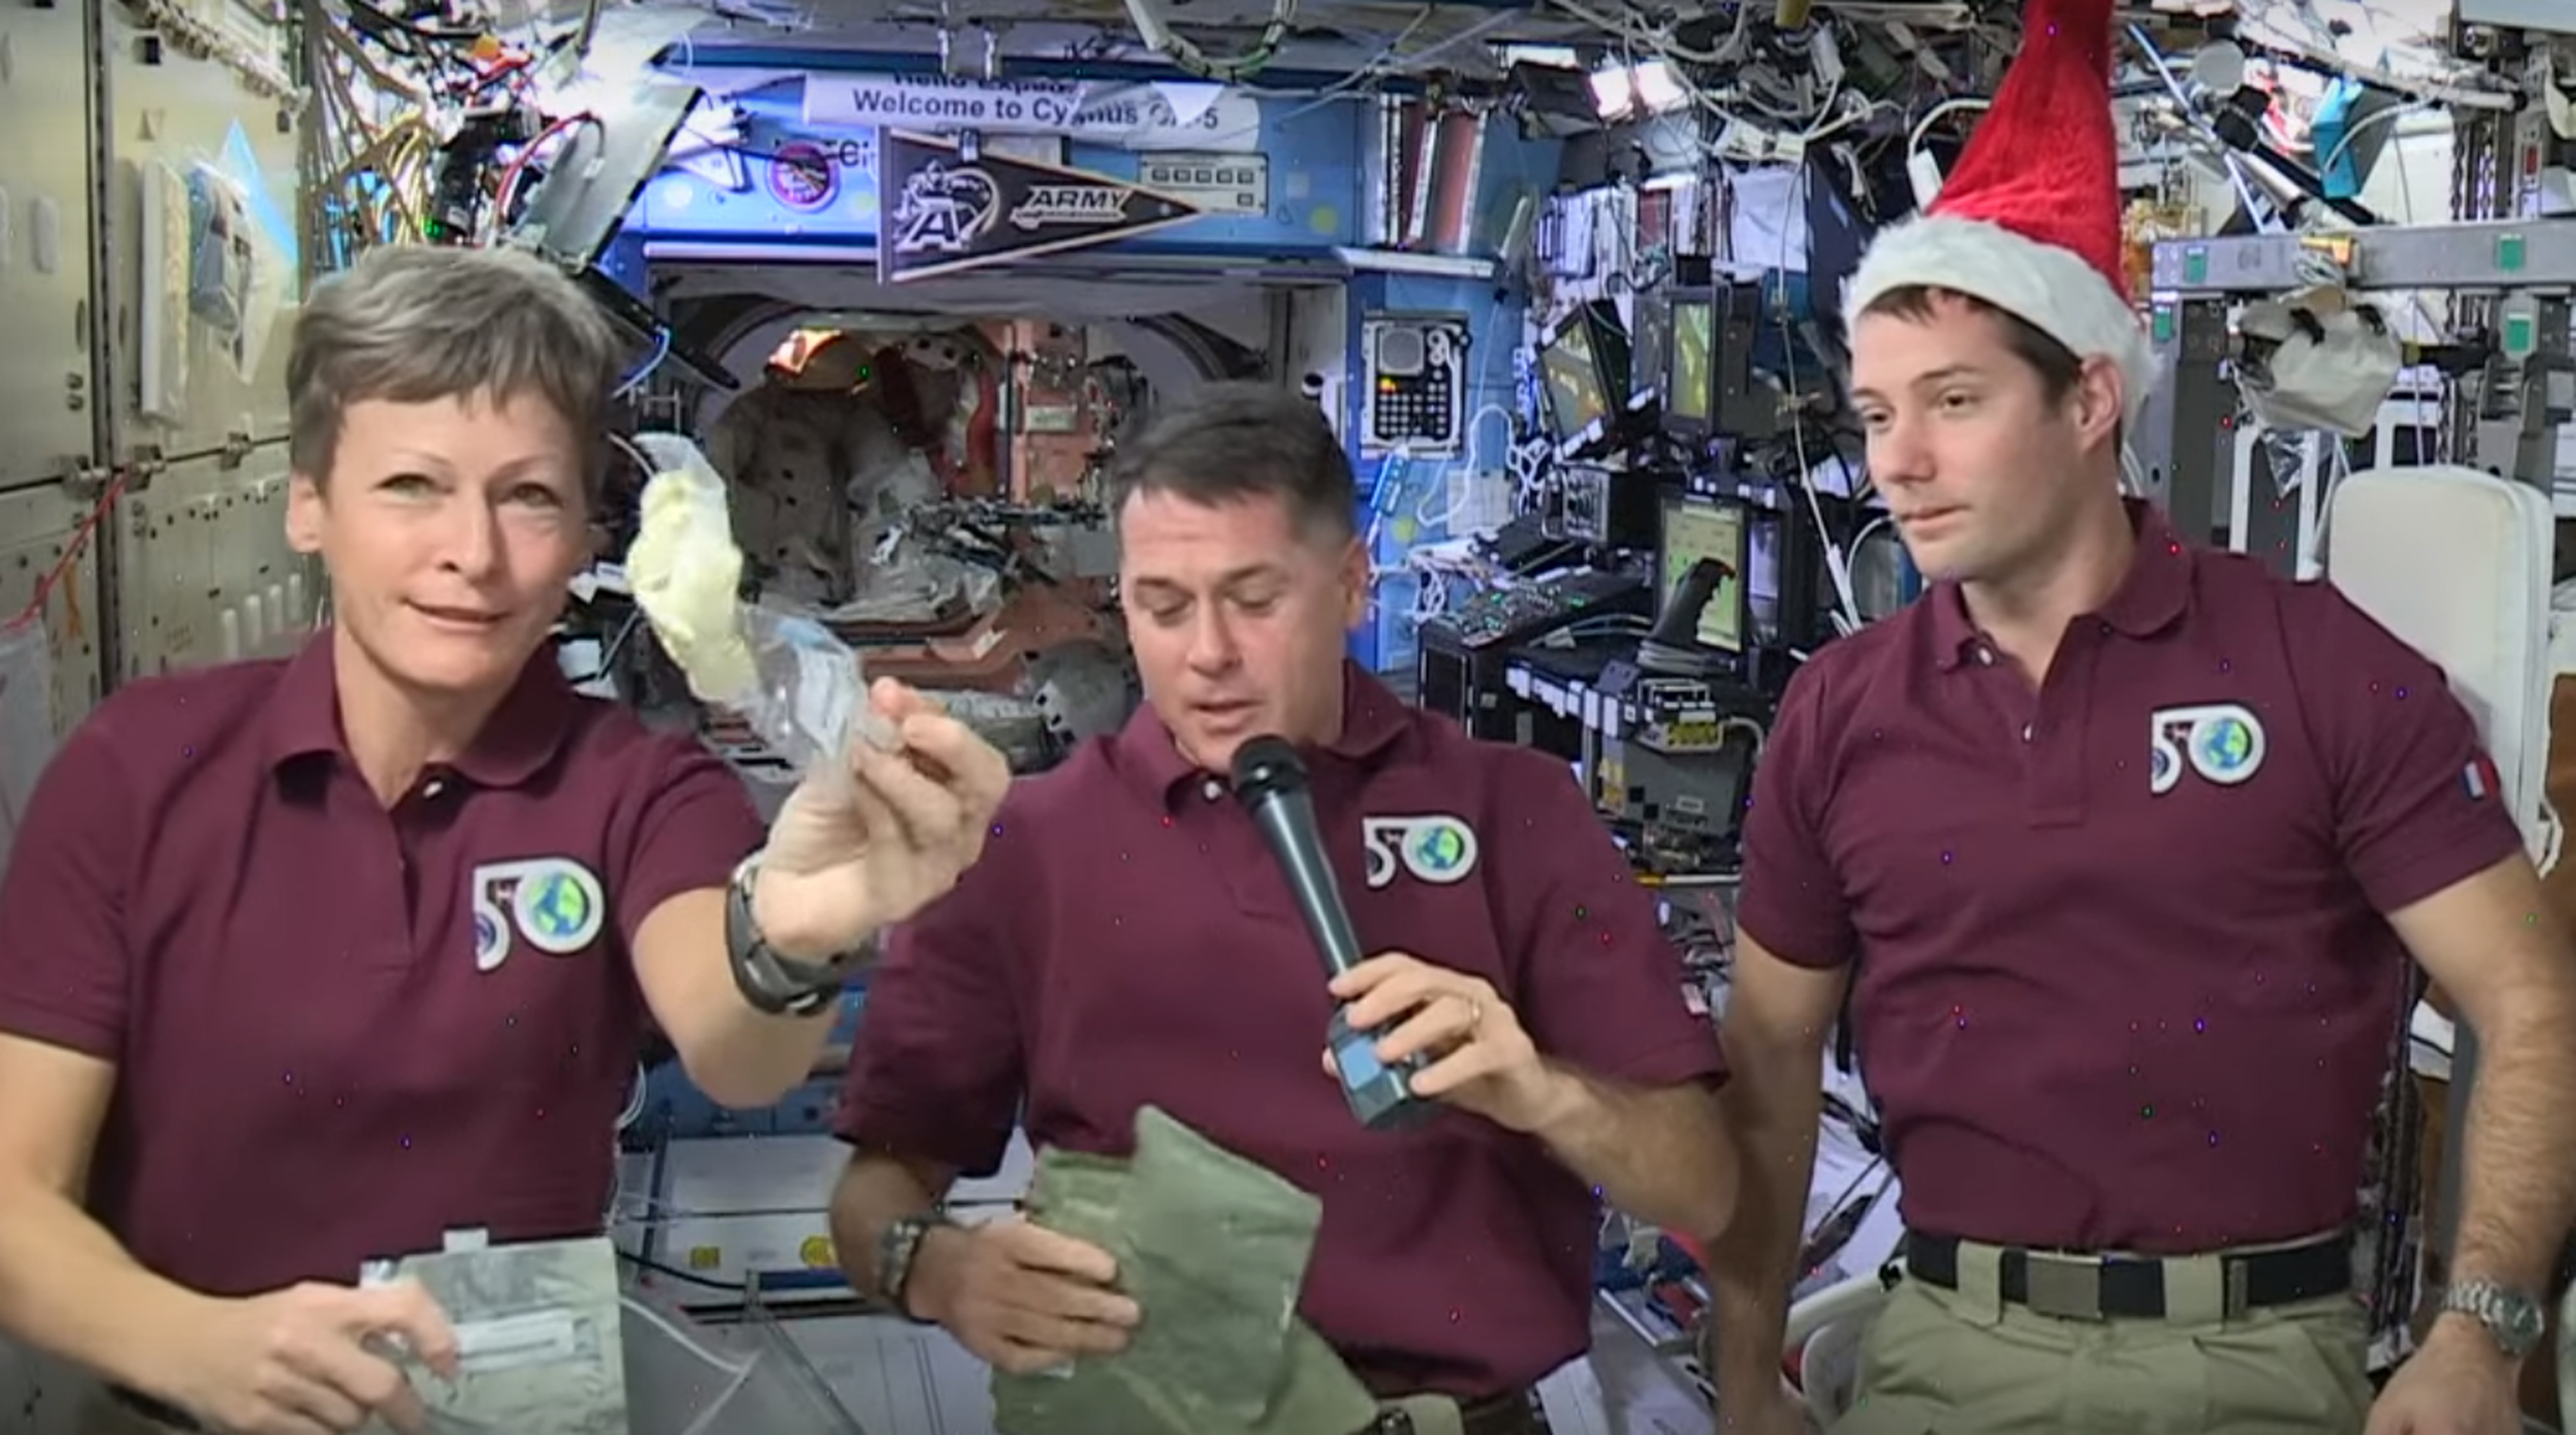 Astronauts on the ISS.